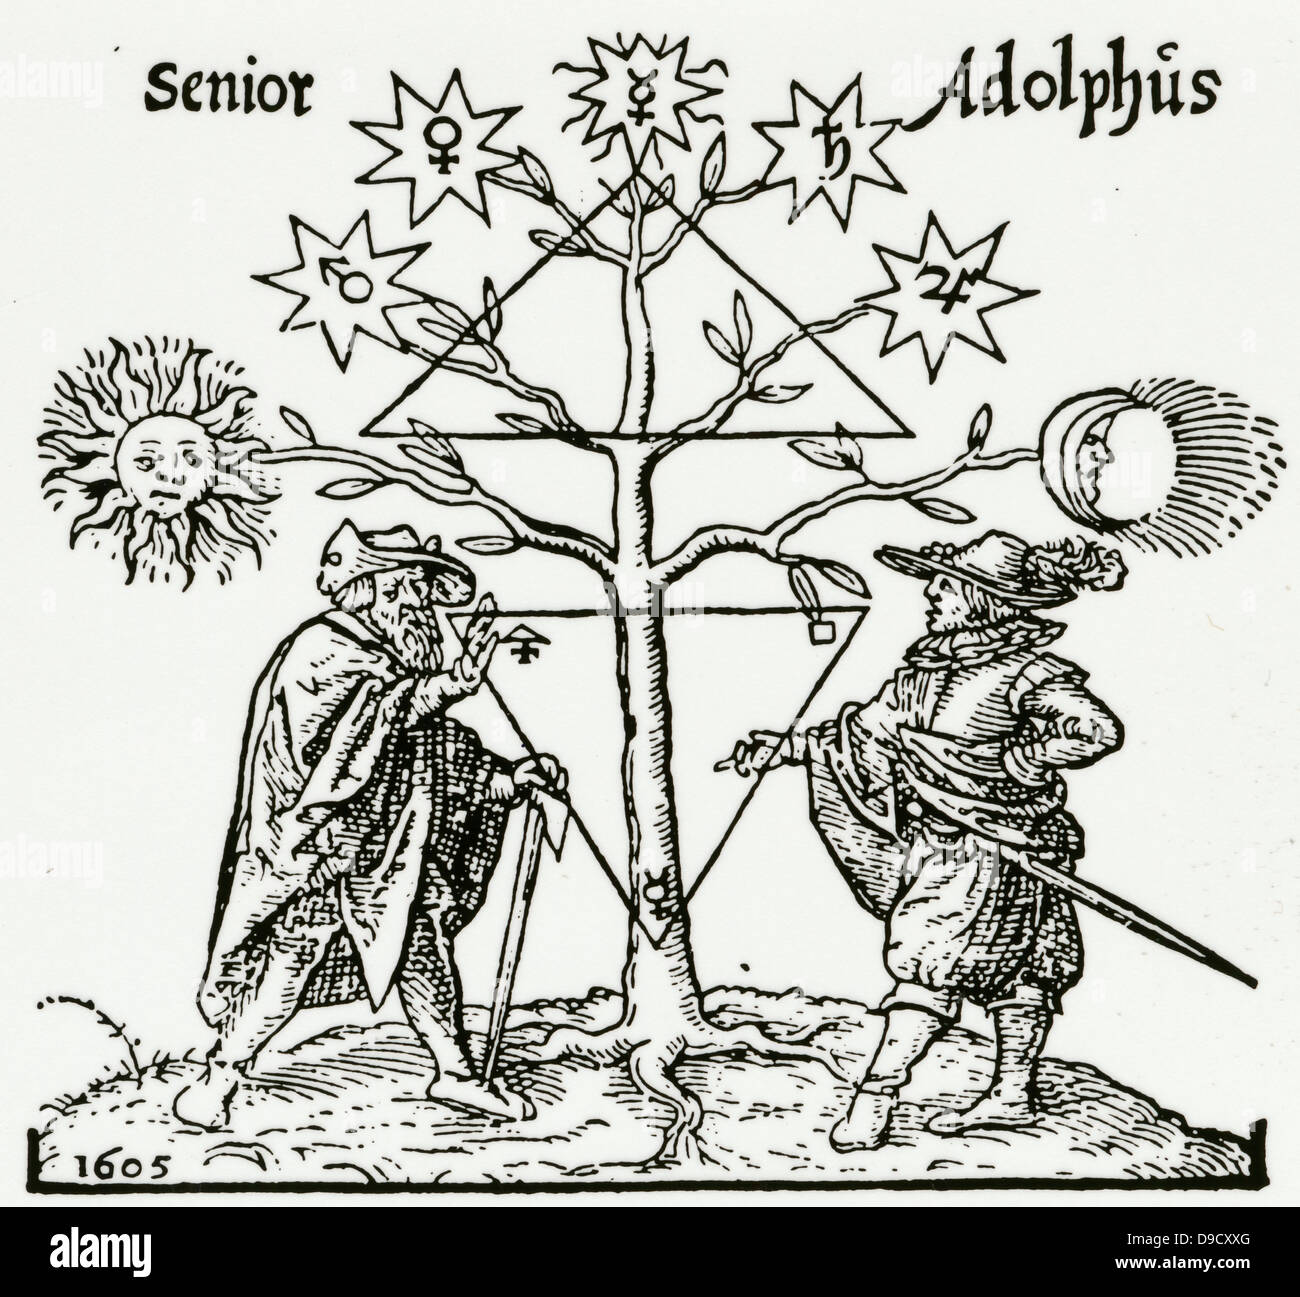 Senior instructs Adolphus at the foot of the Tree of Metals. At corners of lower triangle are symbols of the alchemical - Stock Image